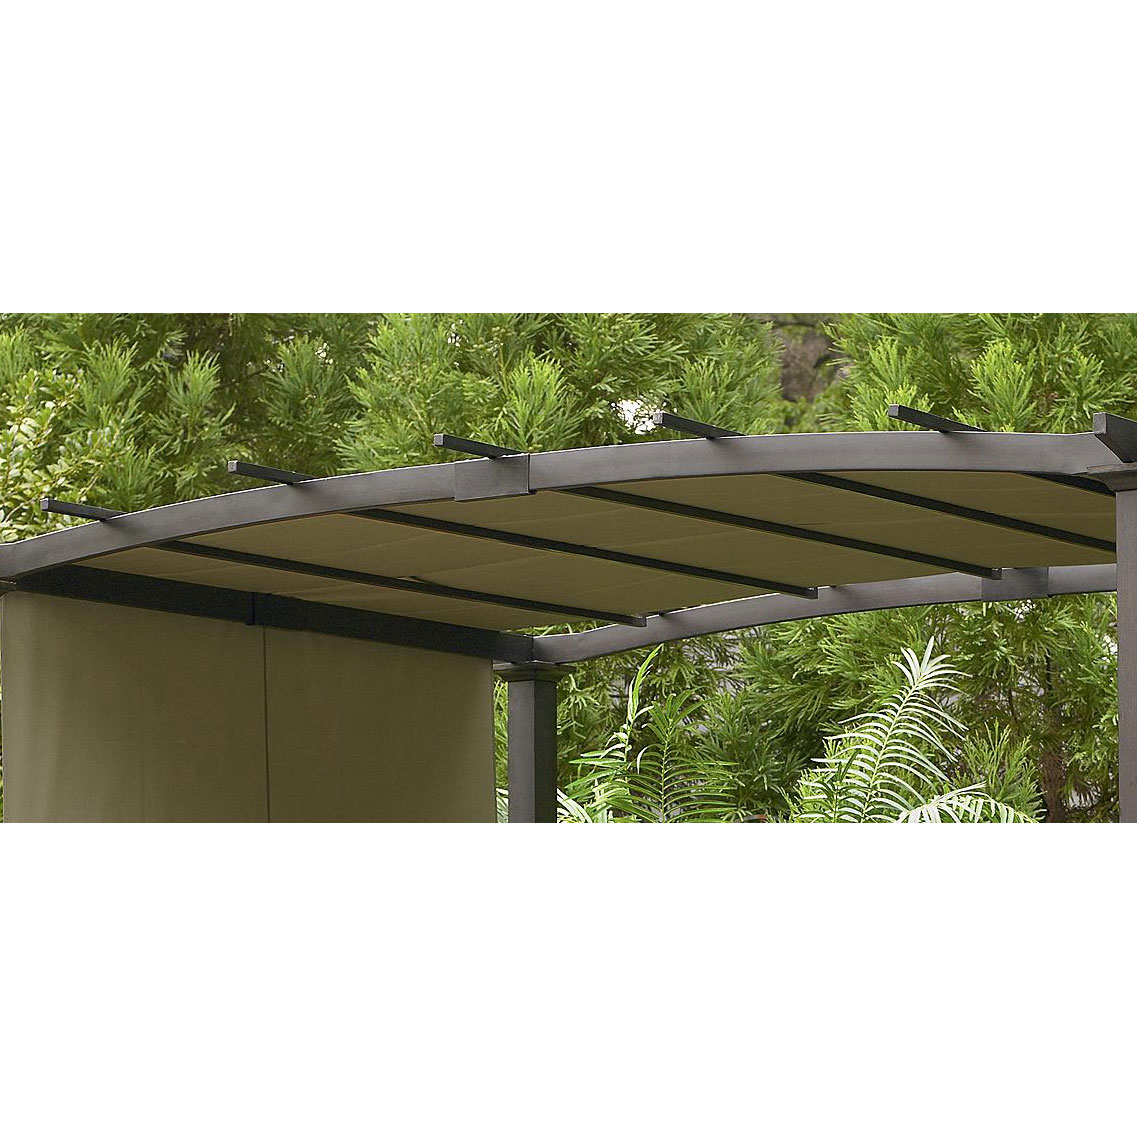 Sears Garden Oasis Curved Pergola Replacement Canopy GF